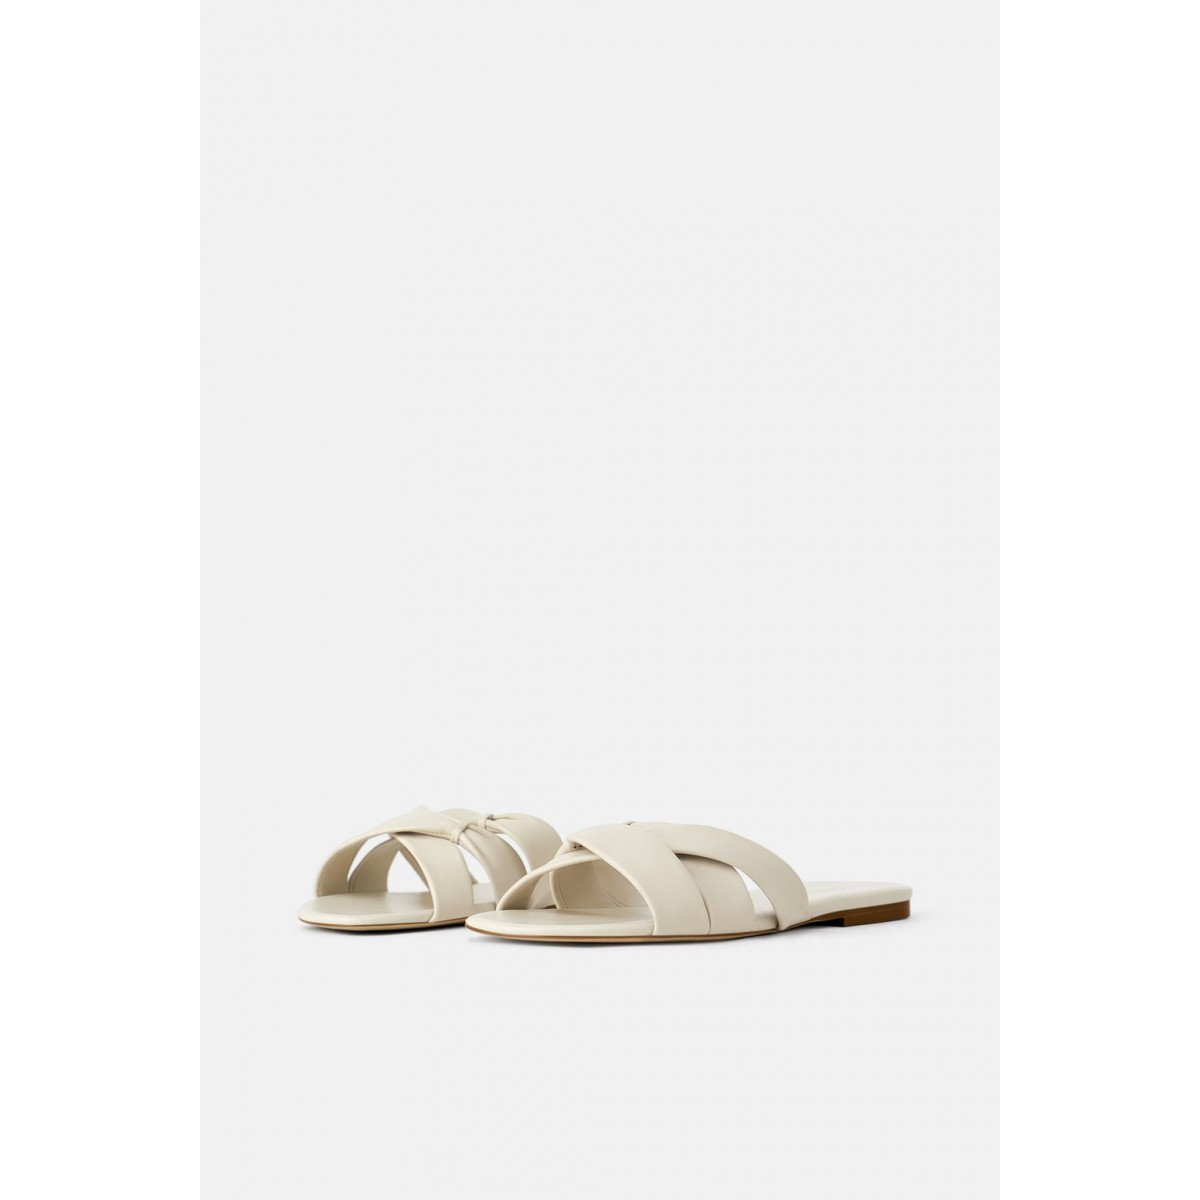 Zara Flat Leather Sandals With Criss-Cross Straps